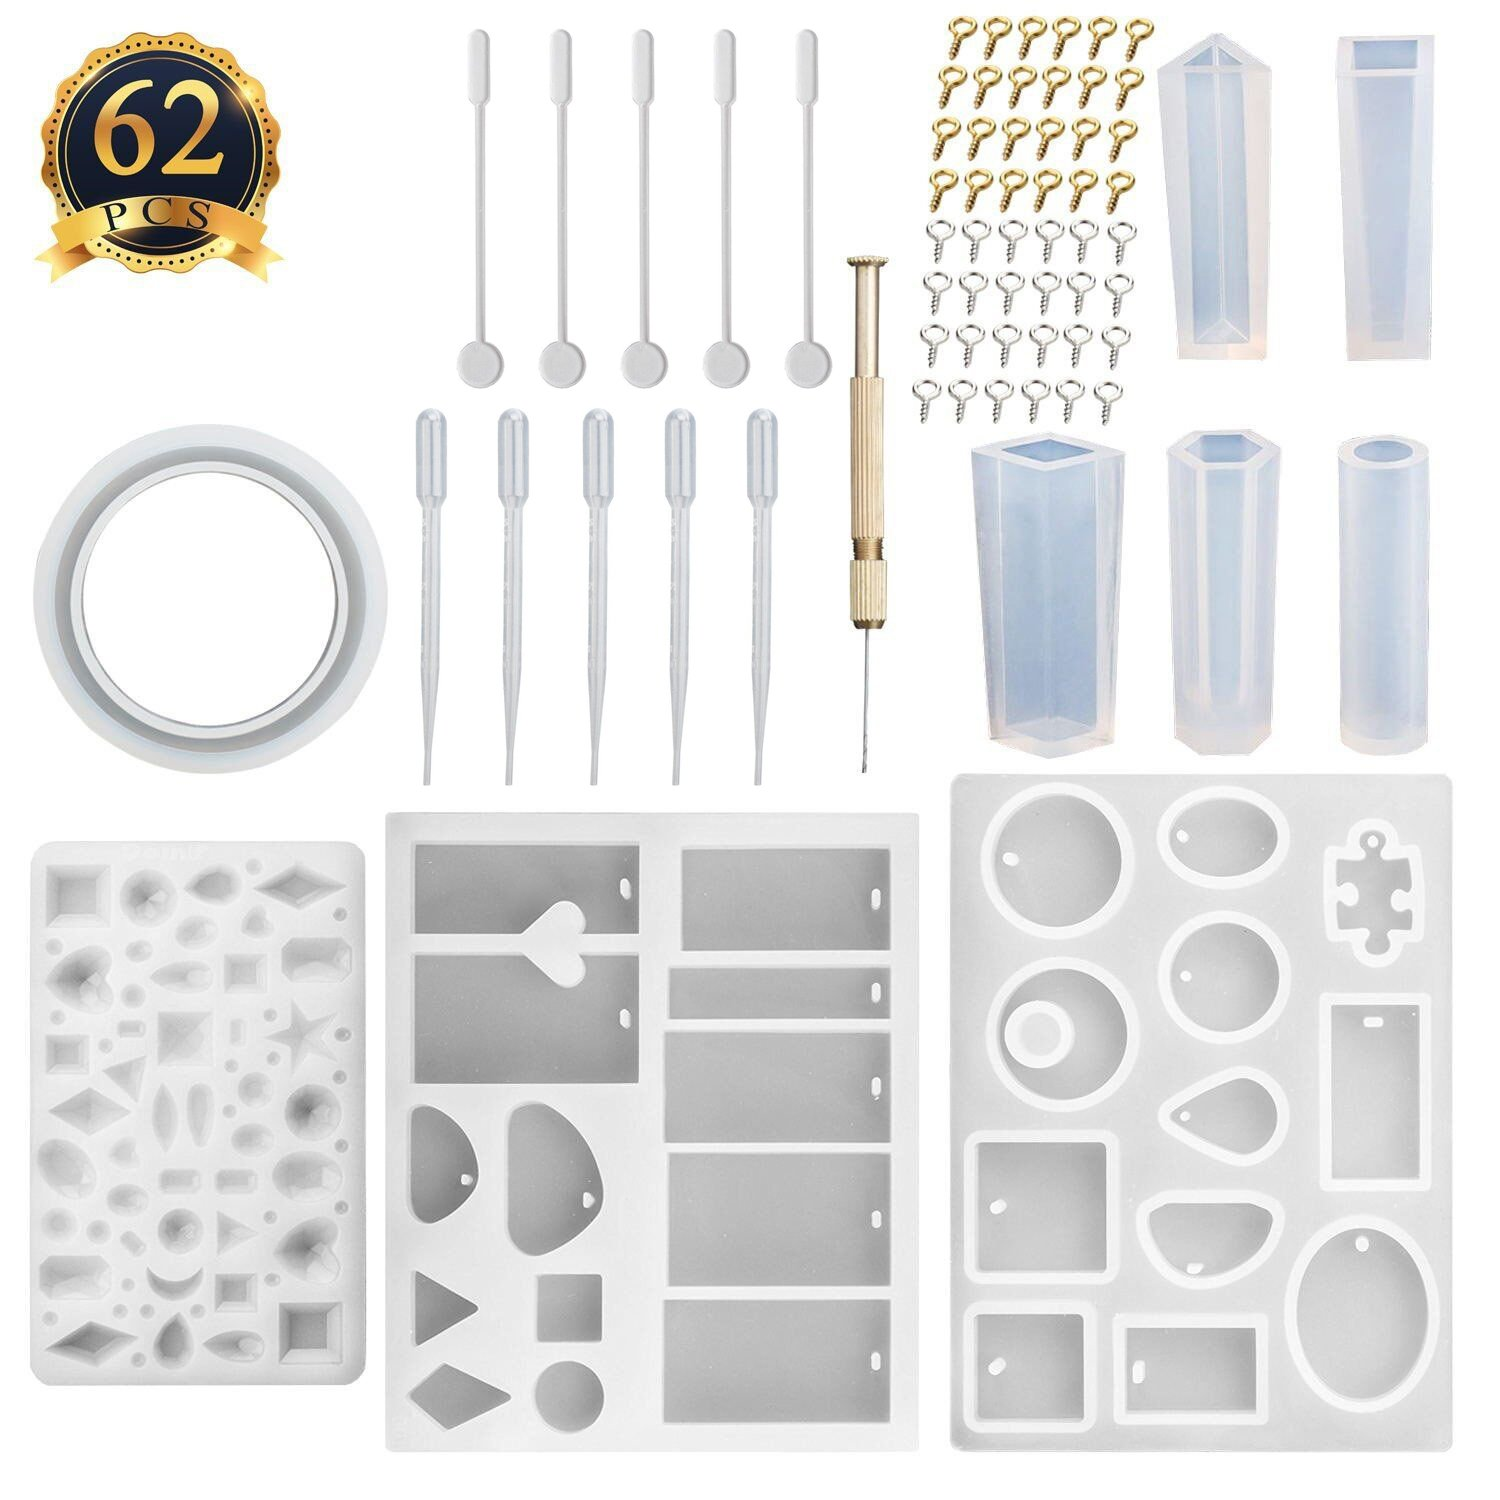 SUBANG 9 Pack Jewelry Casting Molds Silicone Resin Jewelry Molds with 48 Screw Eye Pins, 2 Plastic Stirrers, 1 Hand Twist Drill and 2 Plastic Droppers 4336825392